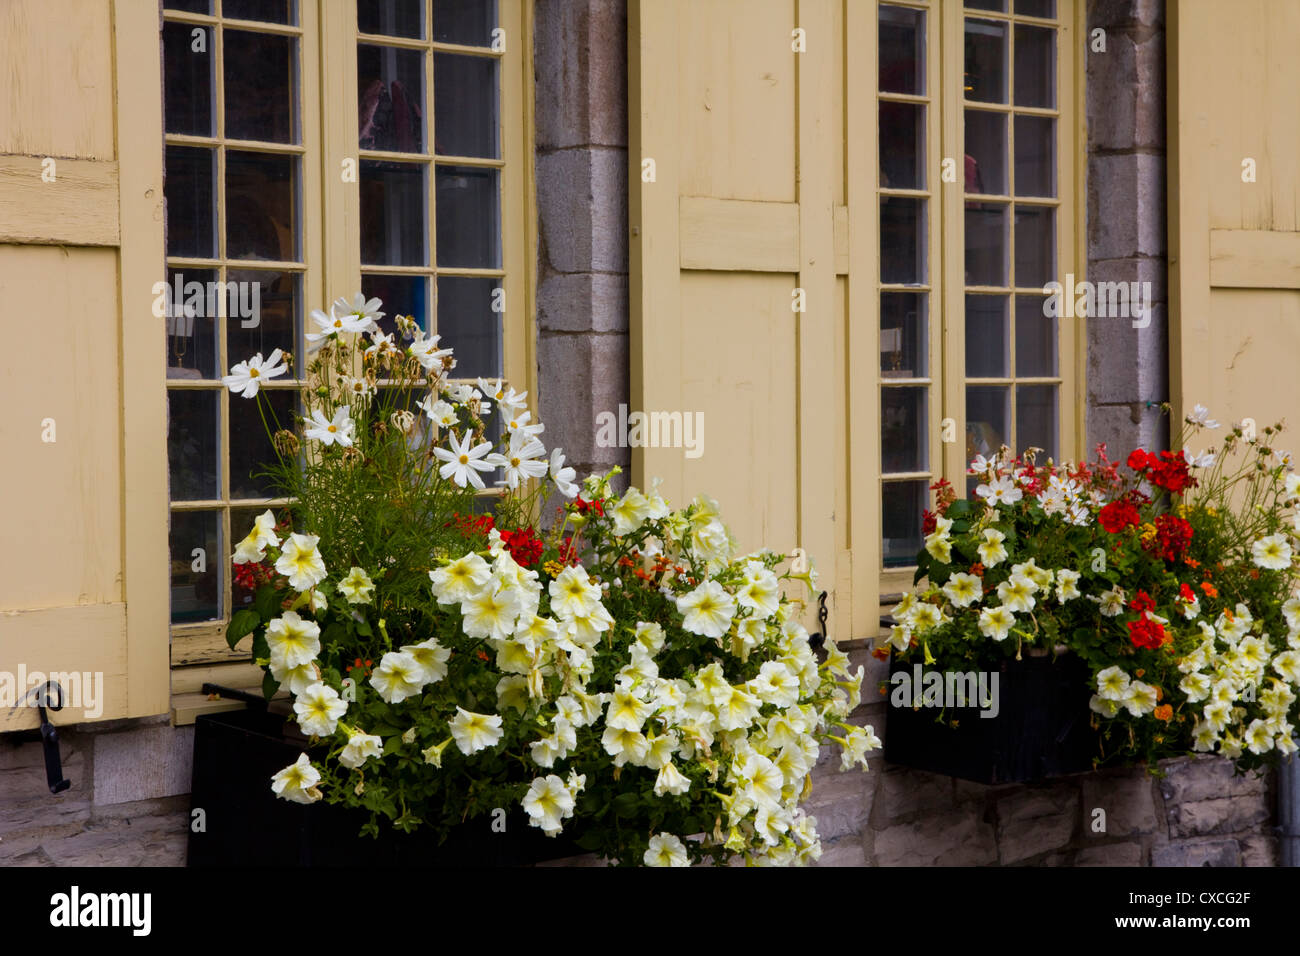 A window box blooms in Place Royale in the heart of historic Quartier Petit Champlain, Quebec City, Canada - Stock Image